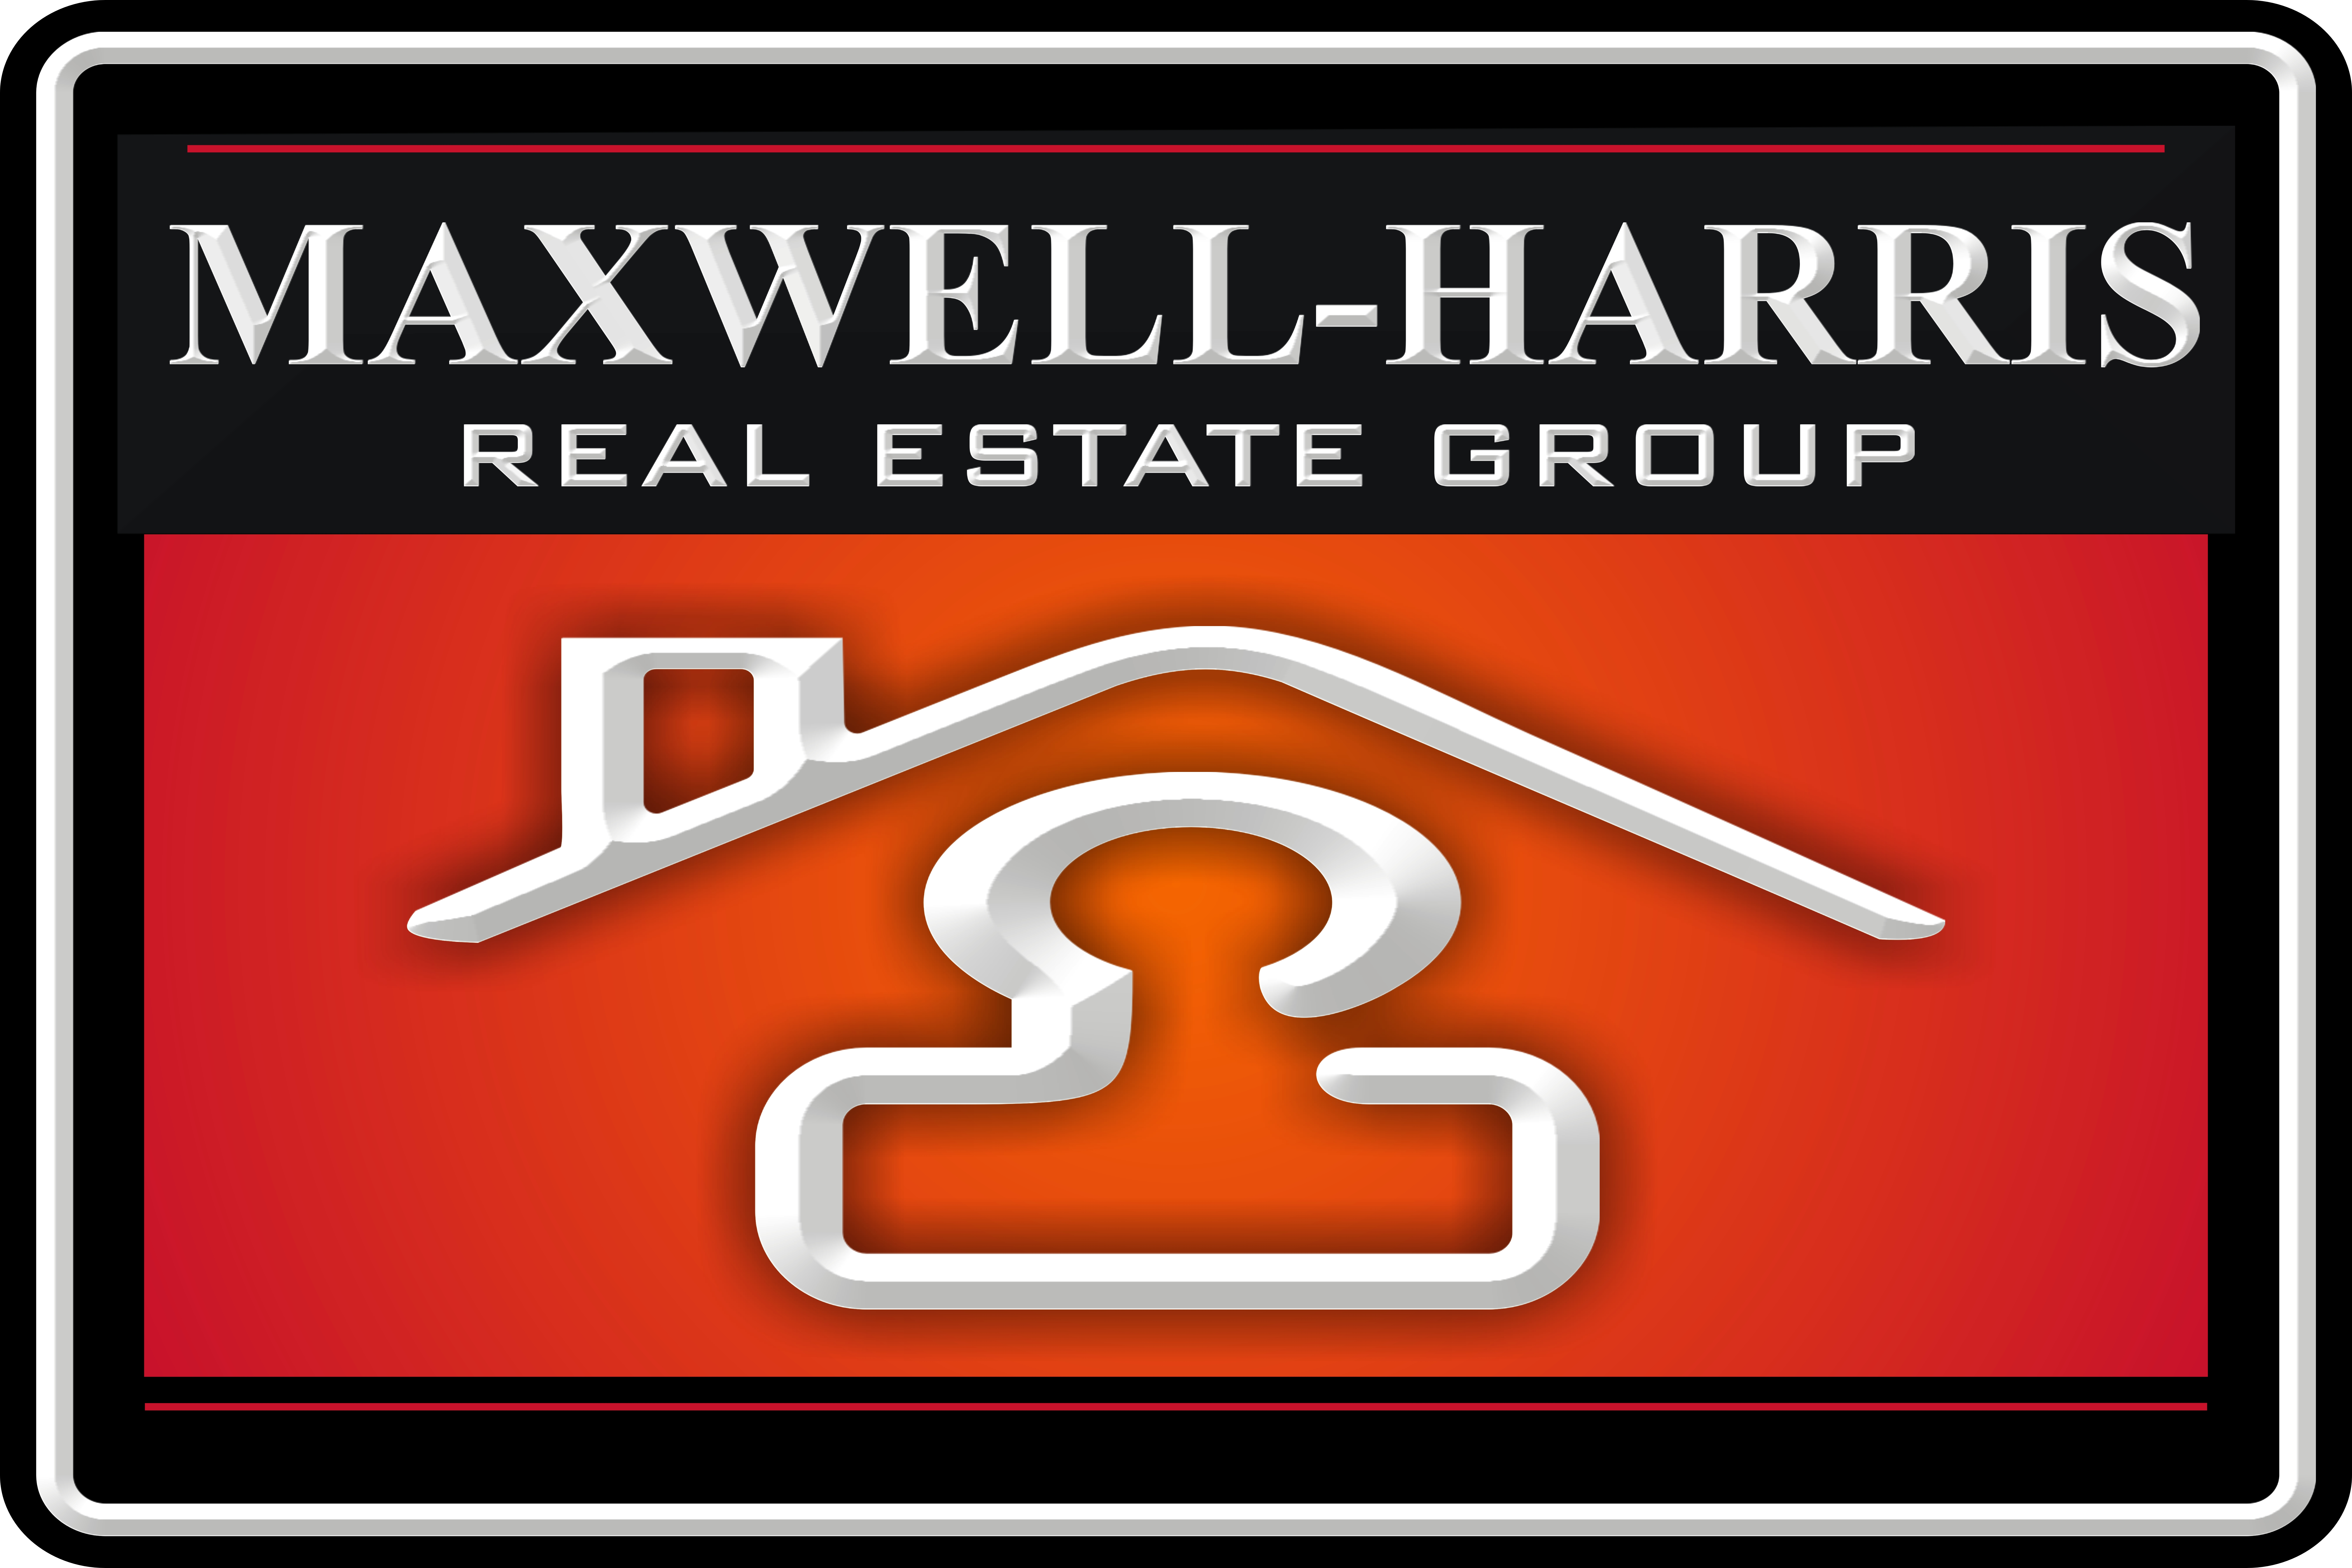 Maxwell-Harris Real Estate Group